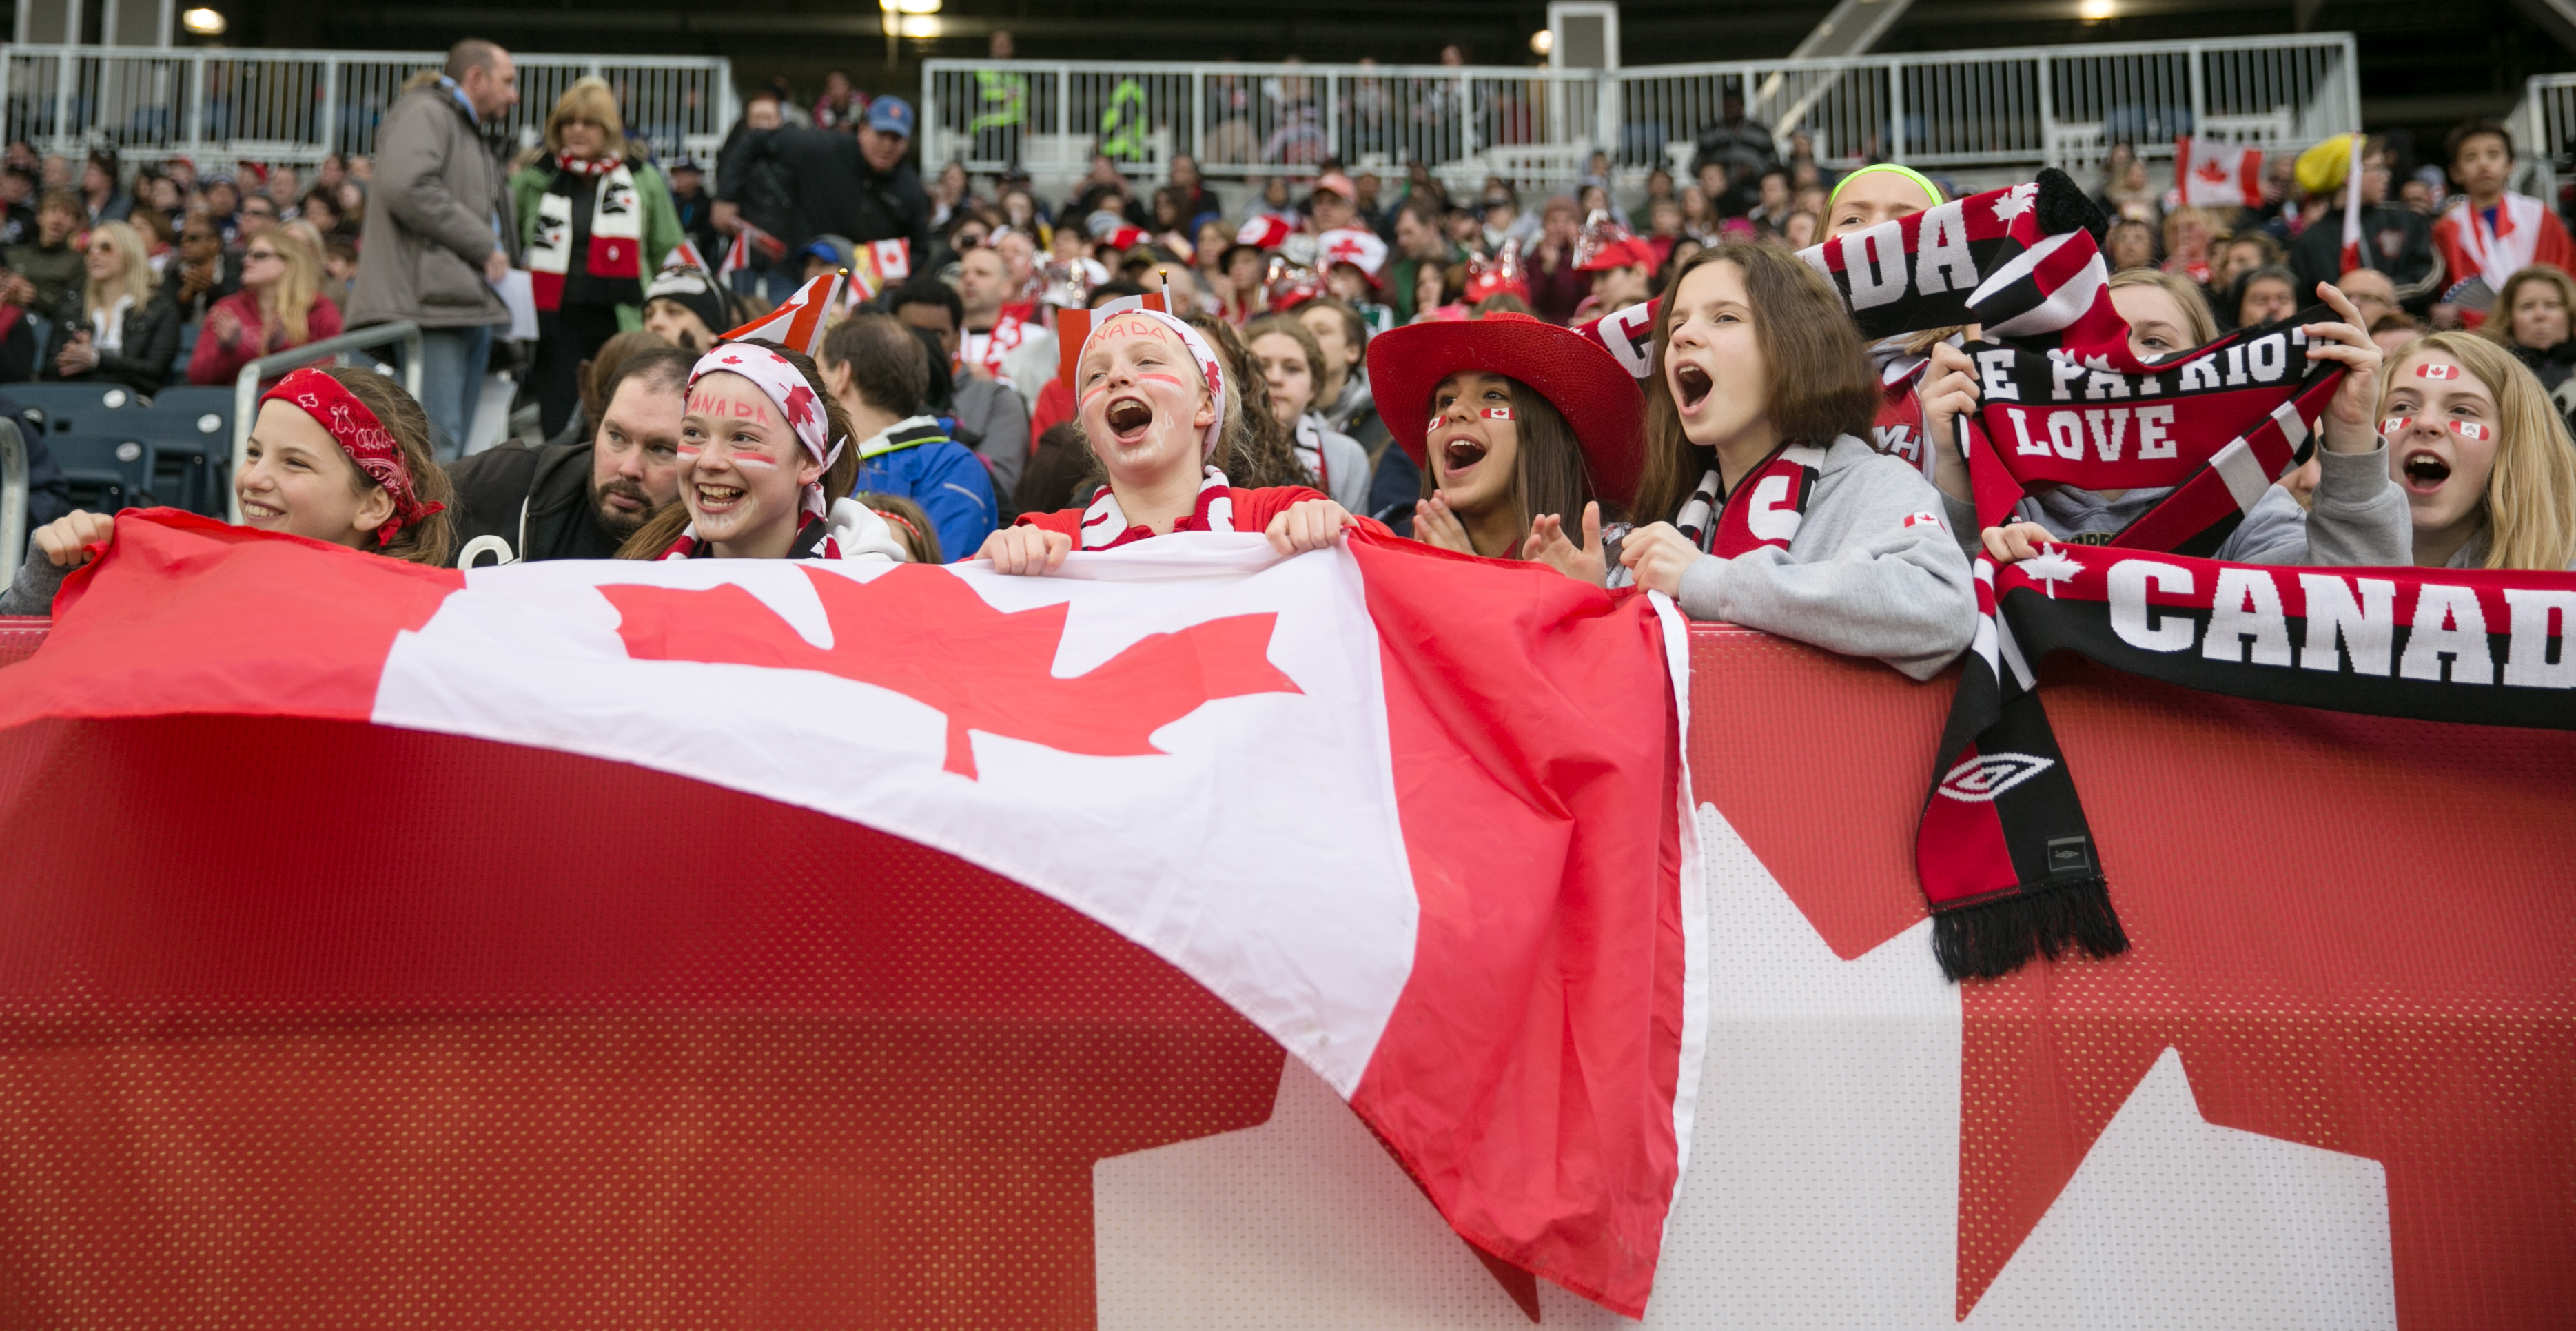 Young Team Canada fans cheer during Canada women's soccer against Team USA at Investors Group Field.